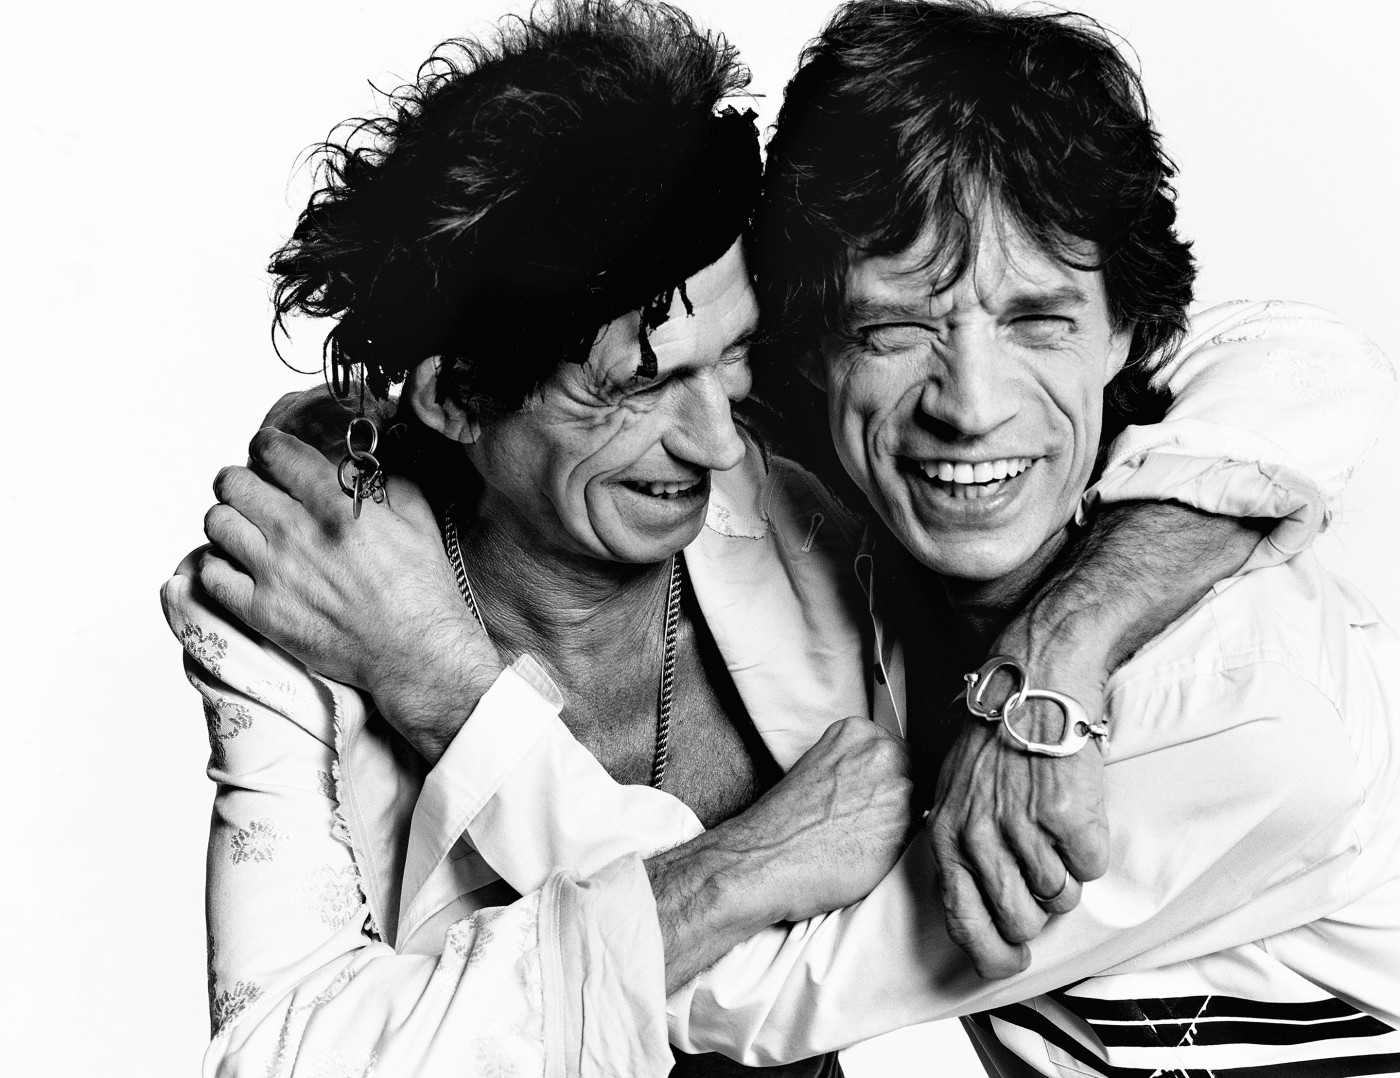 Mario Testino - Keith Richards and Mick Jagger, Los Angeles